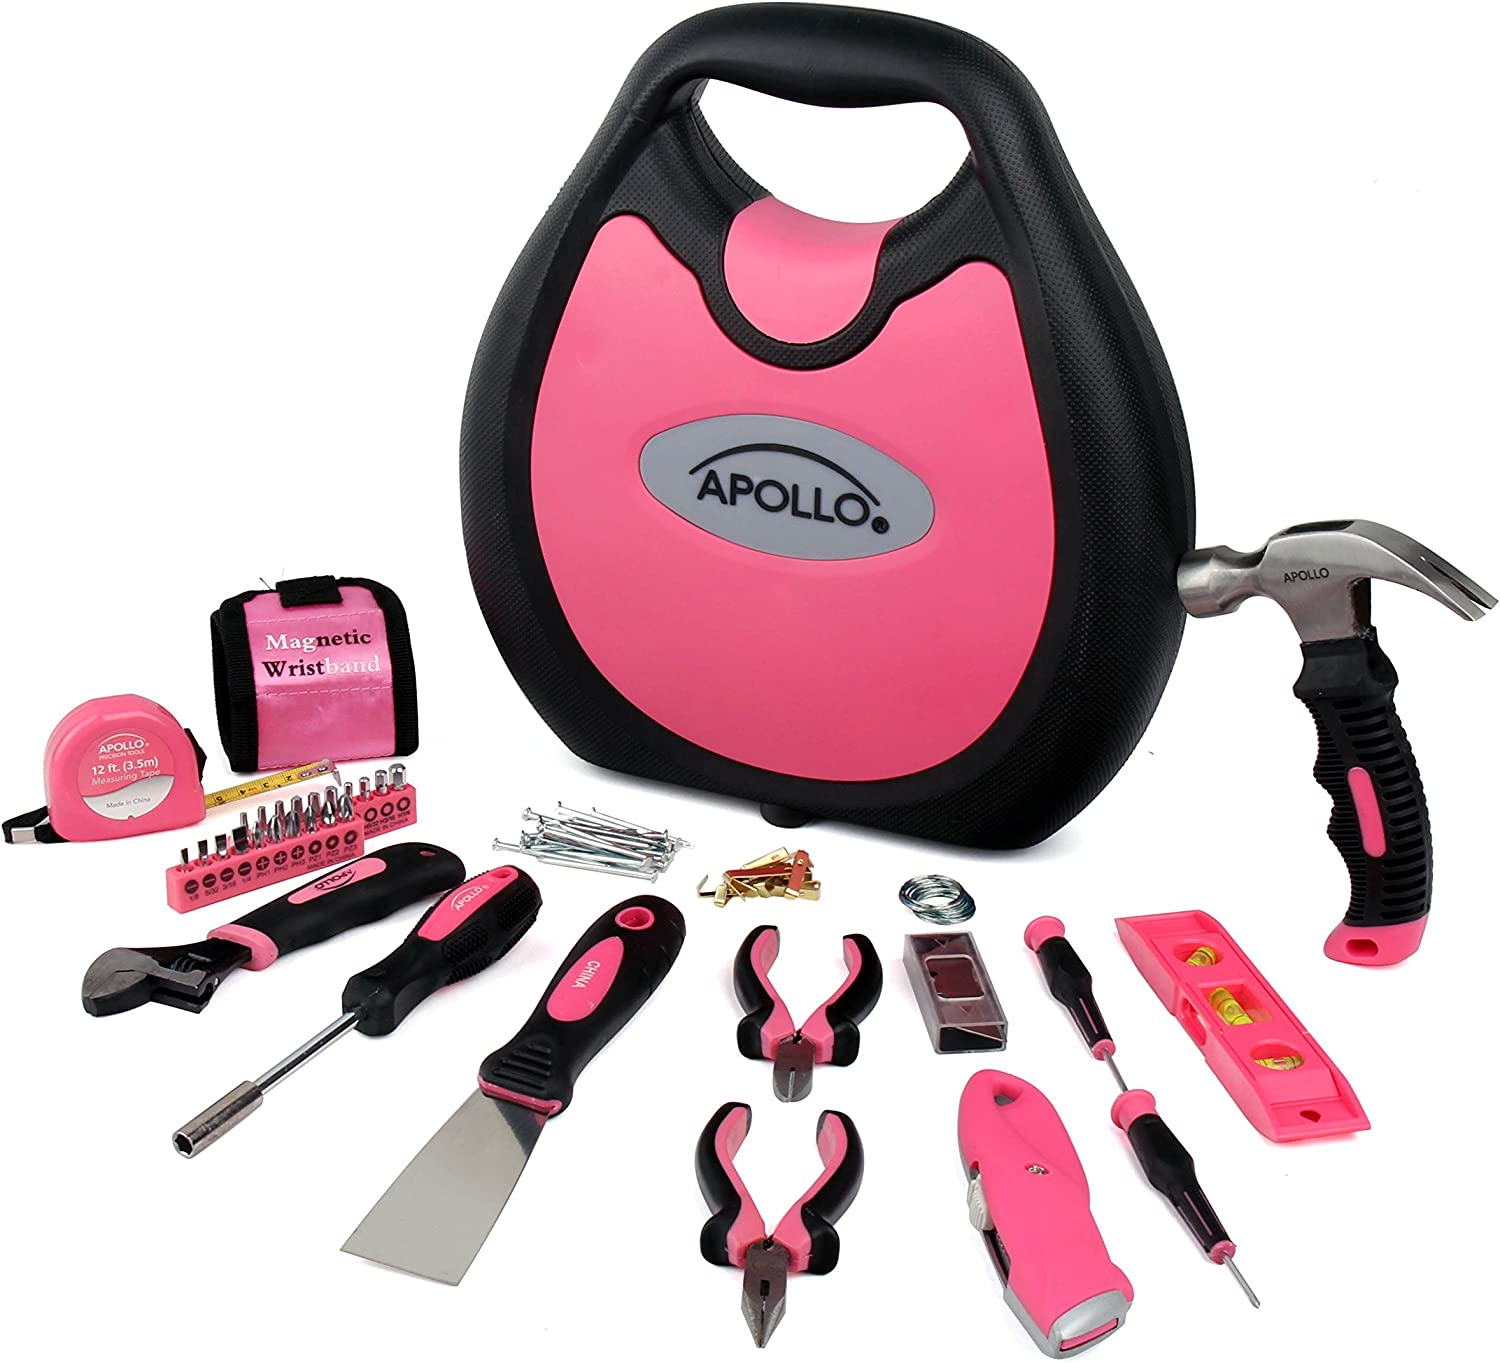 Apollo Tools DT4920P 72 Piece Household Tool Set including Magnetic Wrist Band for Holding Screws, Nails, Nuts, Bolts in Stylish Designer Case